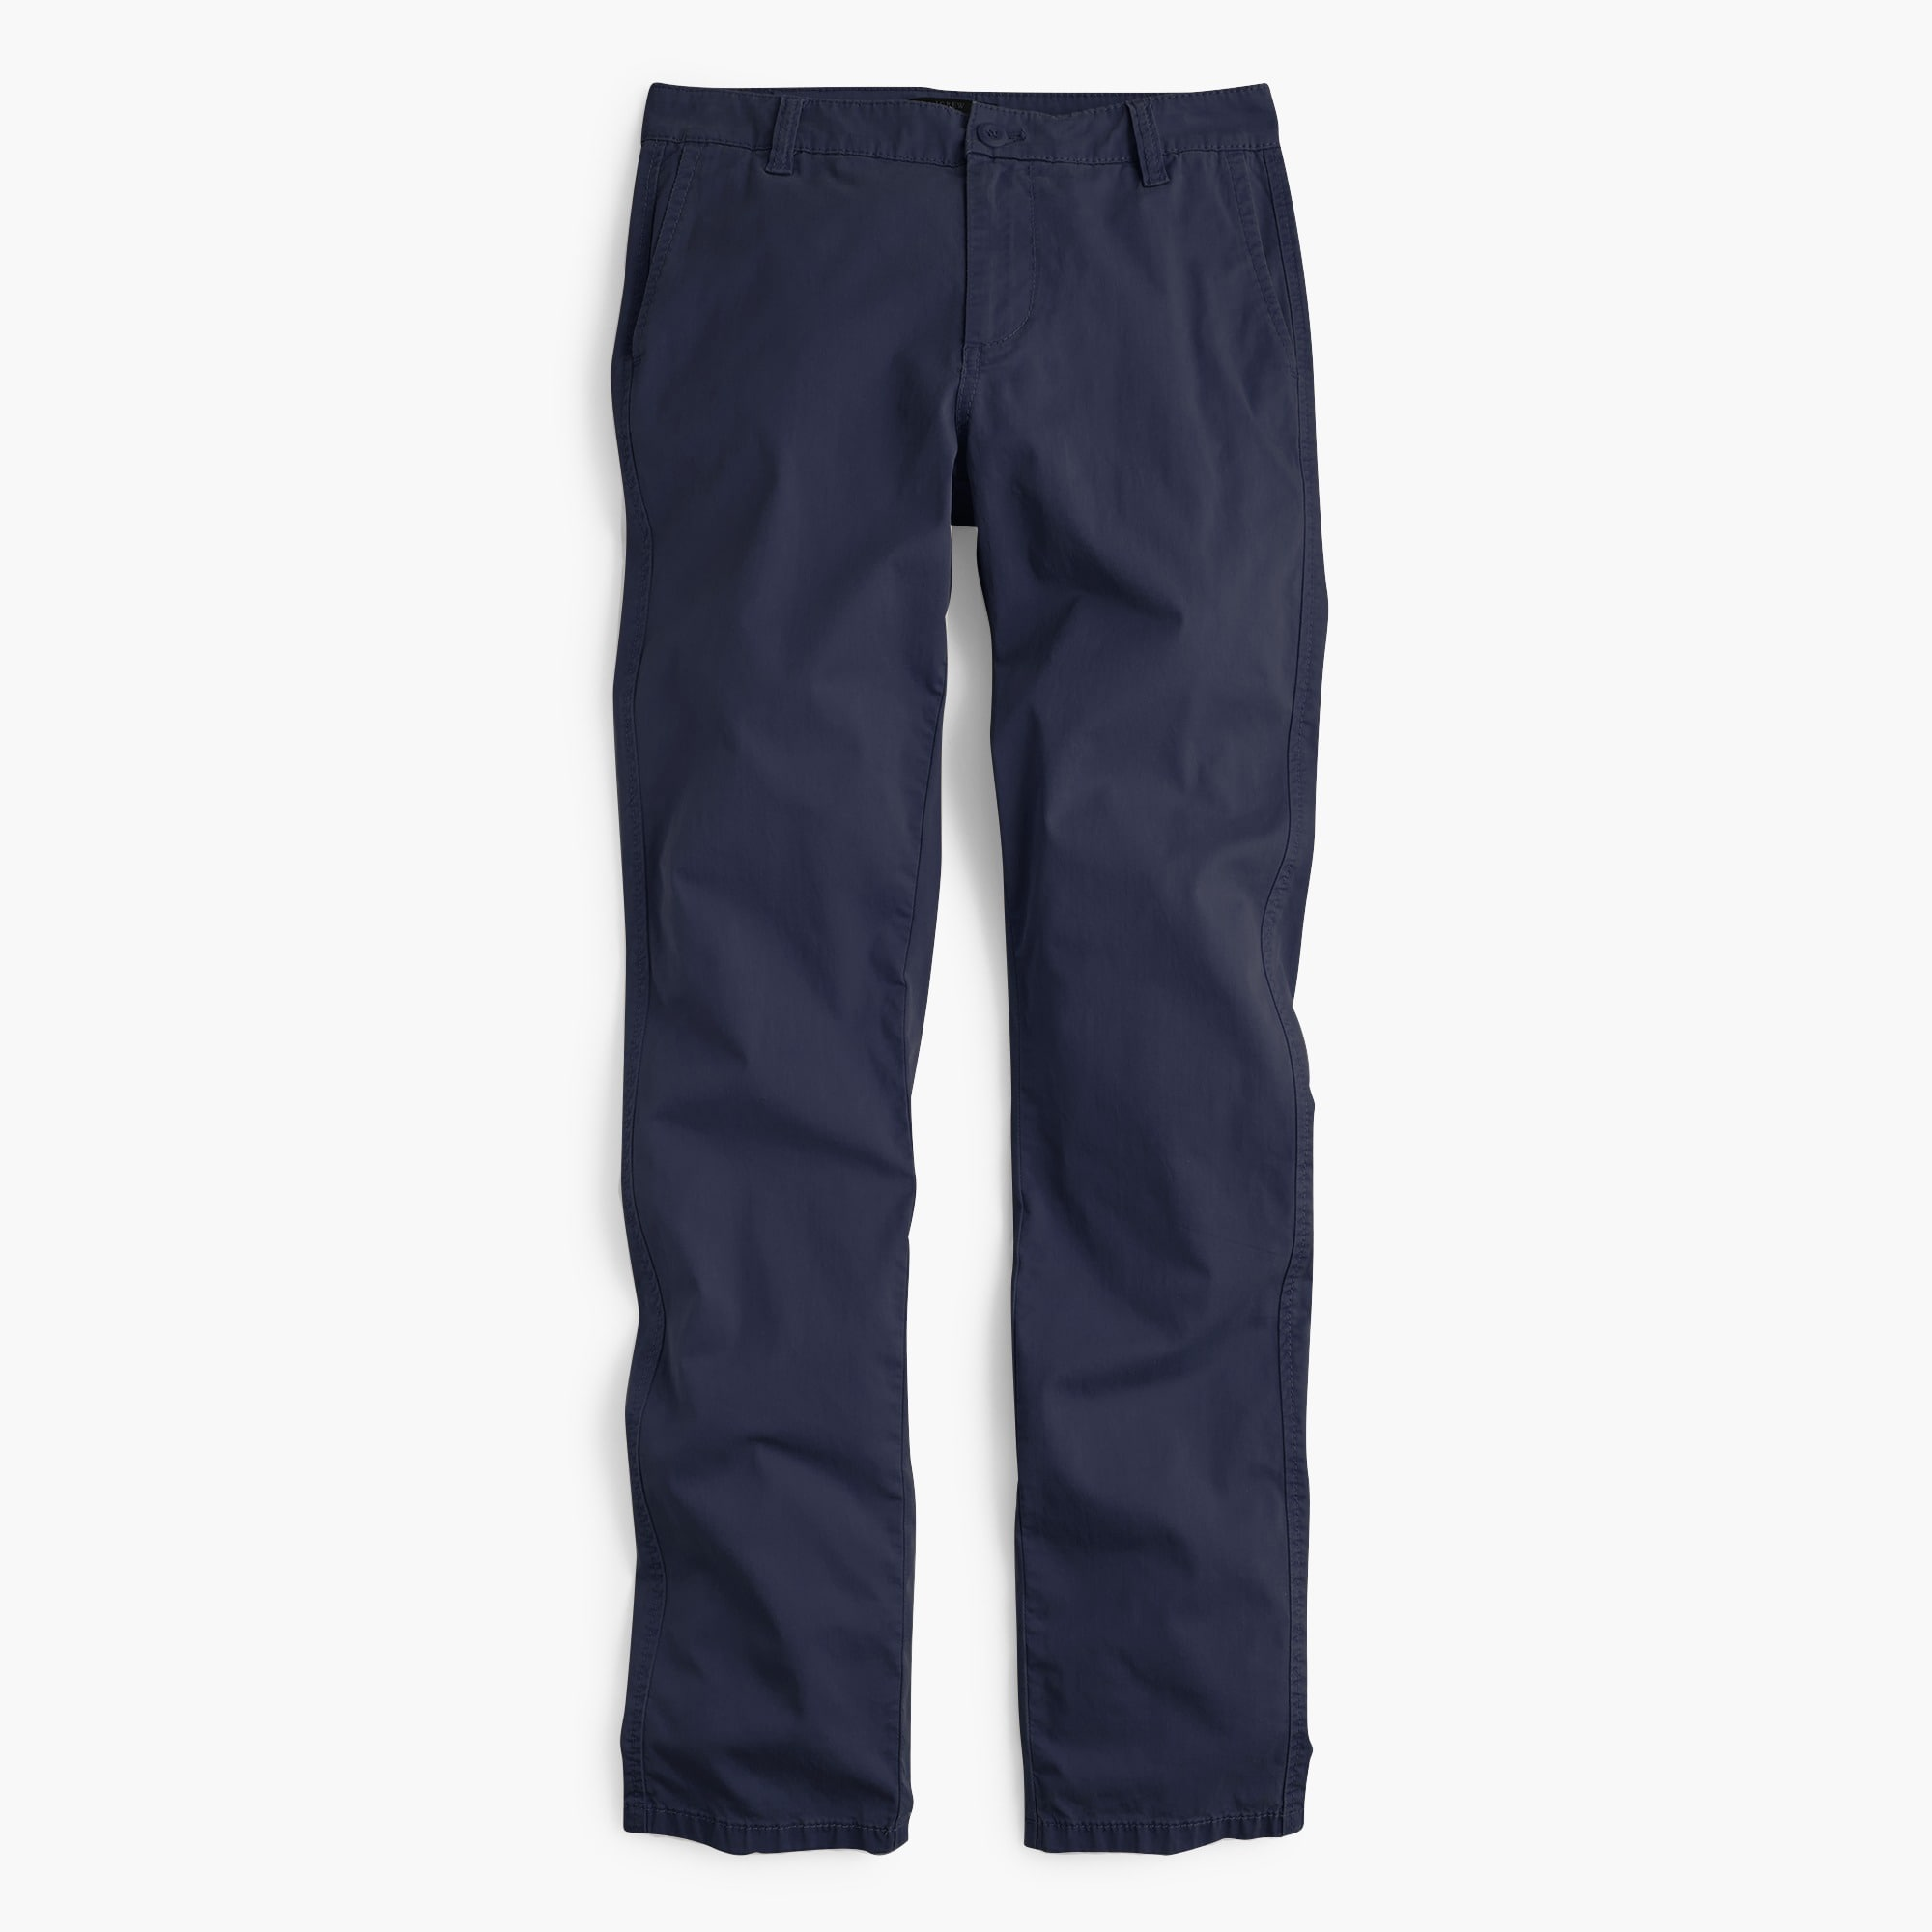 Image 3 for Tall straight-leg pant in stretch chino